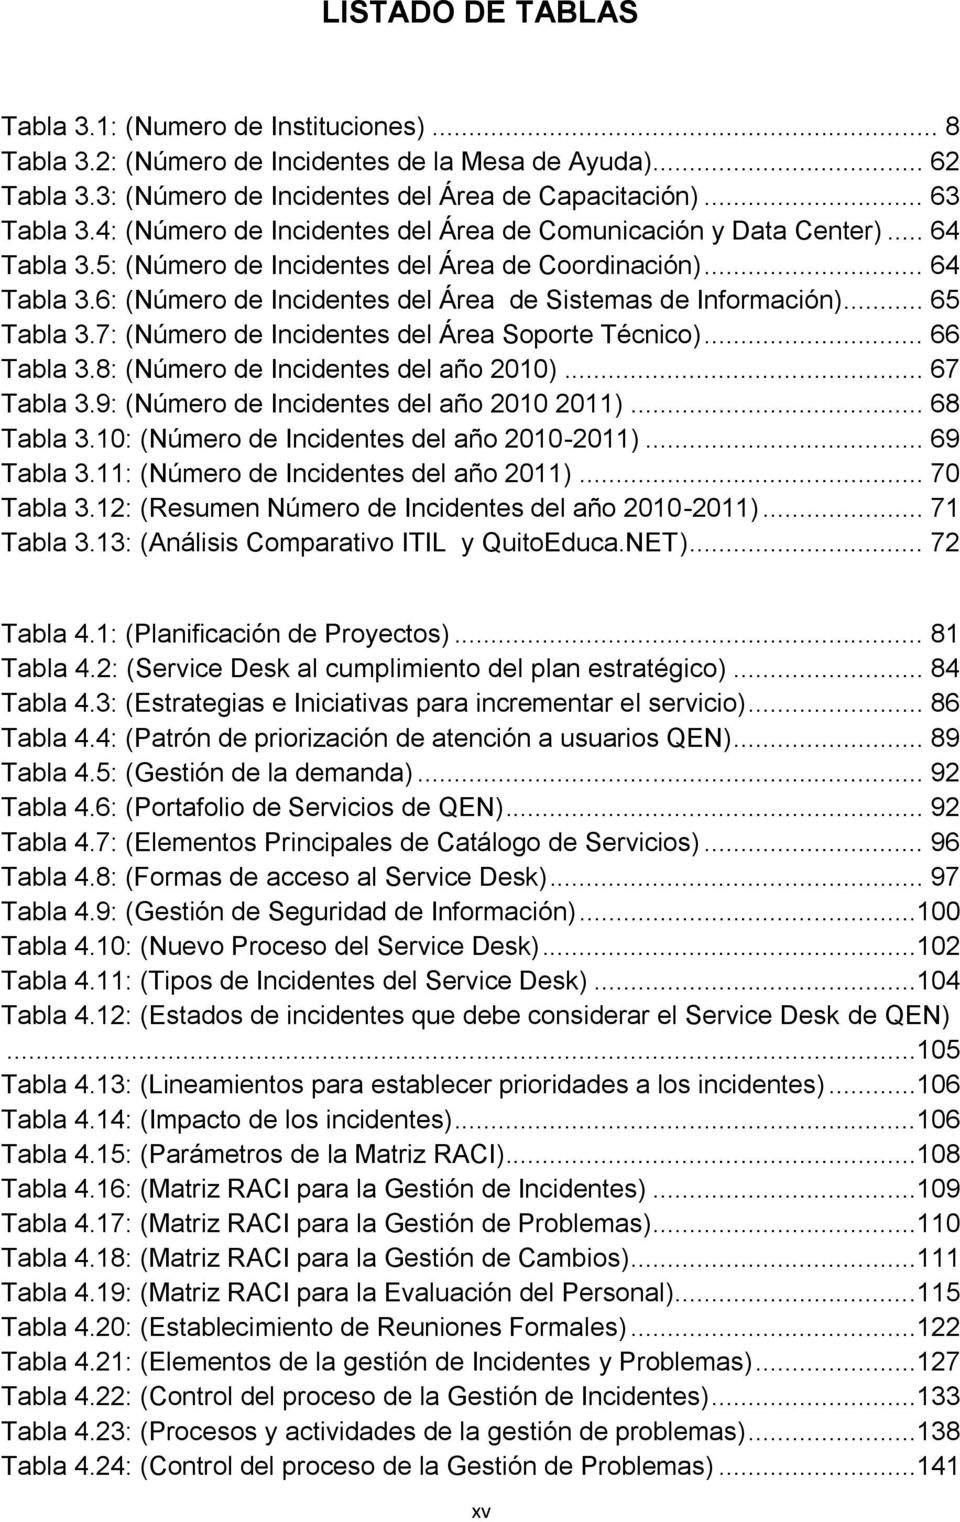 .. 65 Tabla 3.7: (Número de Incidentes del Área Soporte Técnico)... 66 Tabla 3.8: (Número de Incidentes del año 2010)... 67 Tabla 3.9: (Número de Incidentes del año 2010 2011)... 68 Tabla 3.